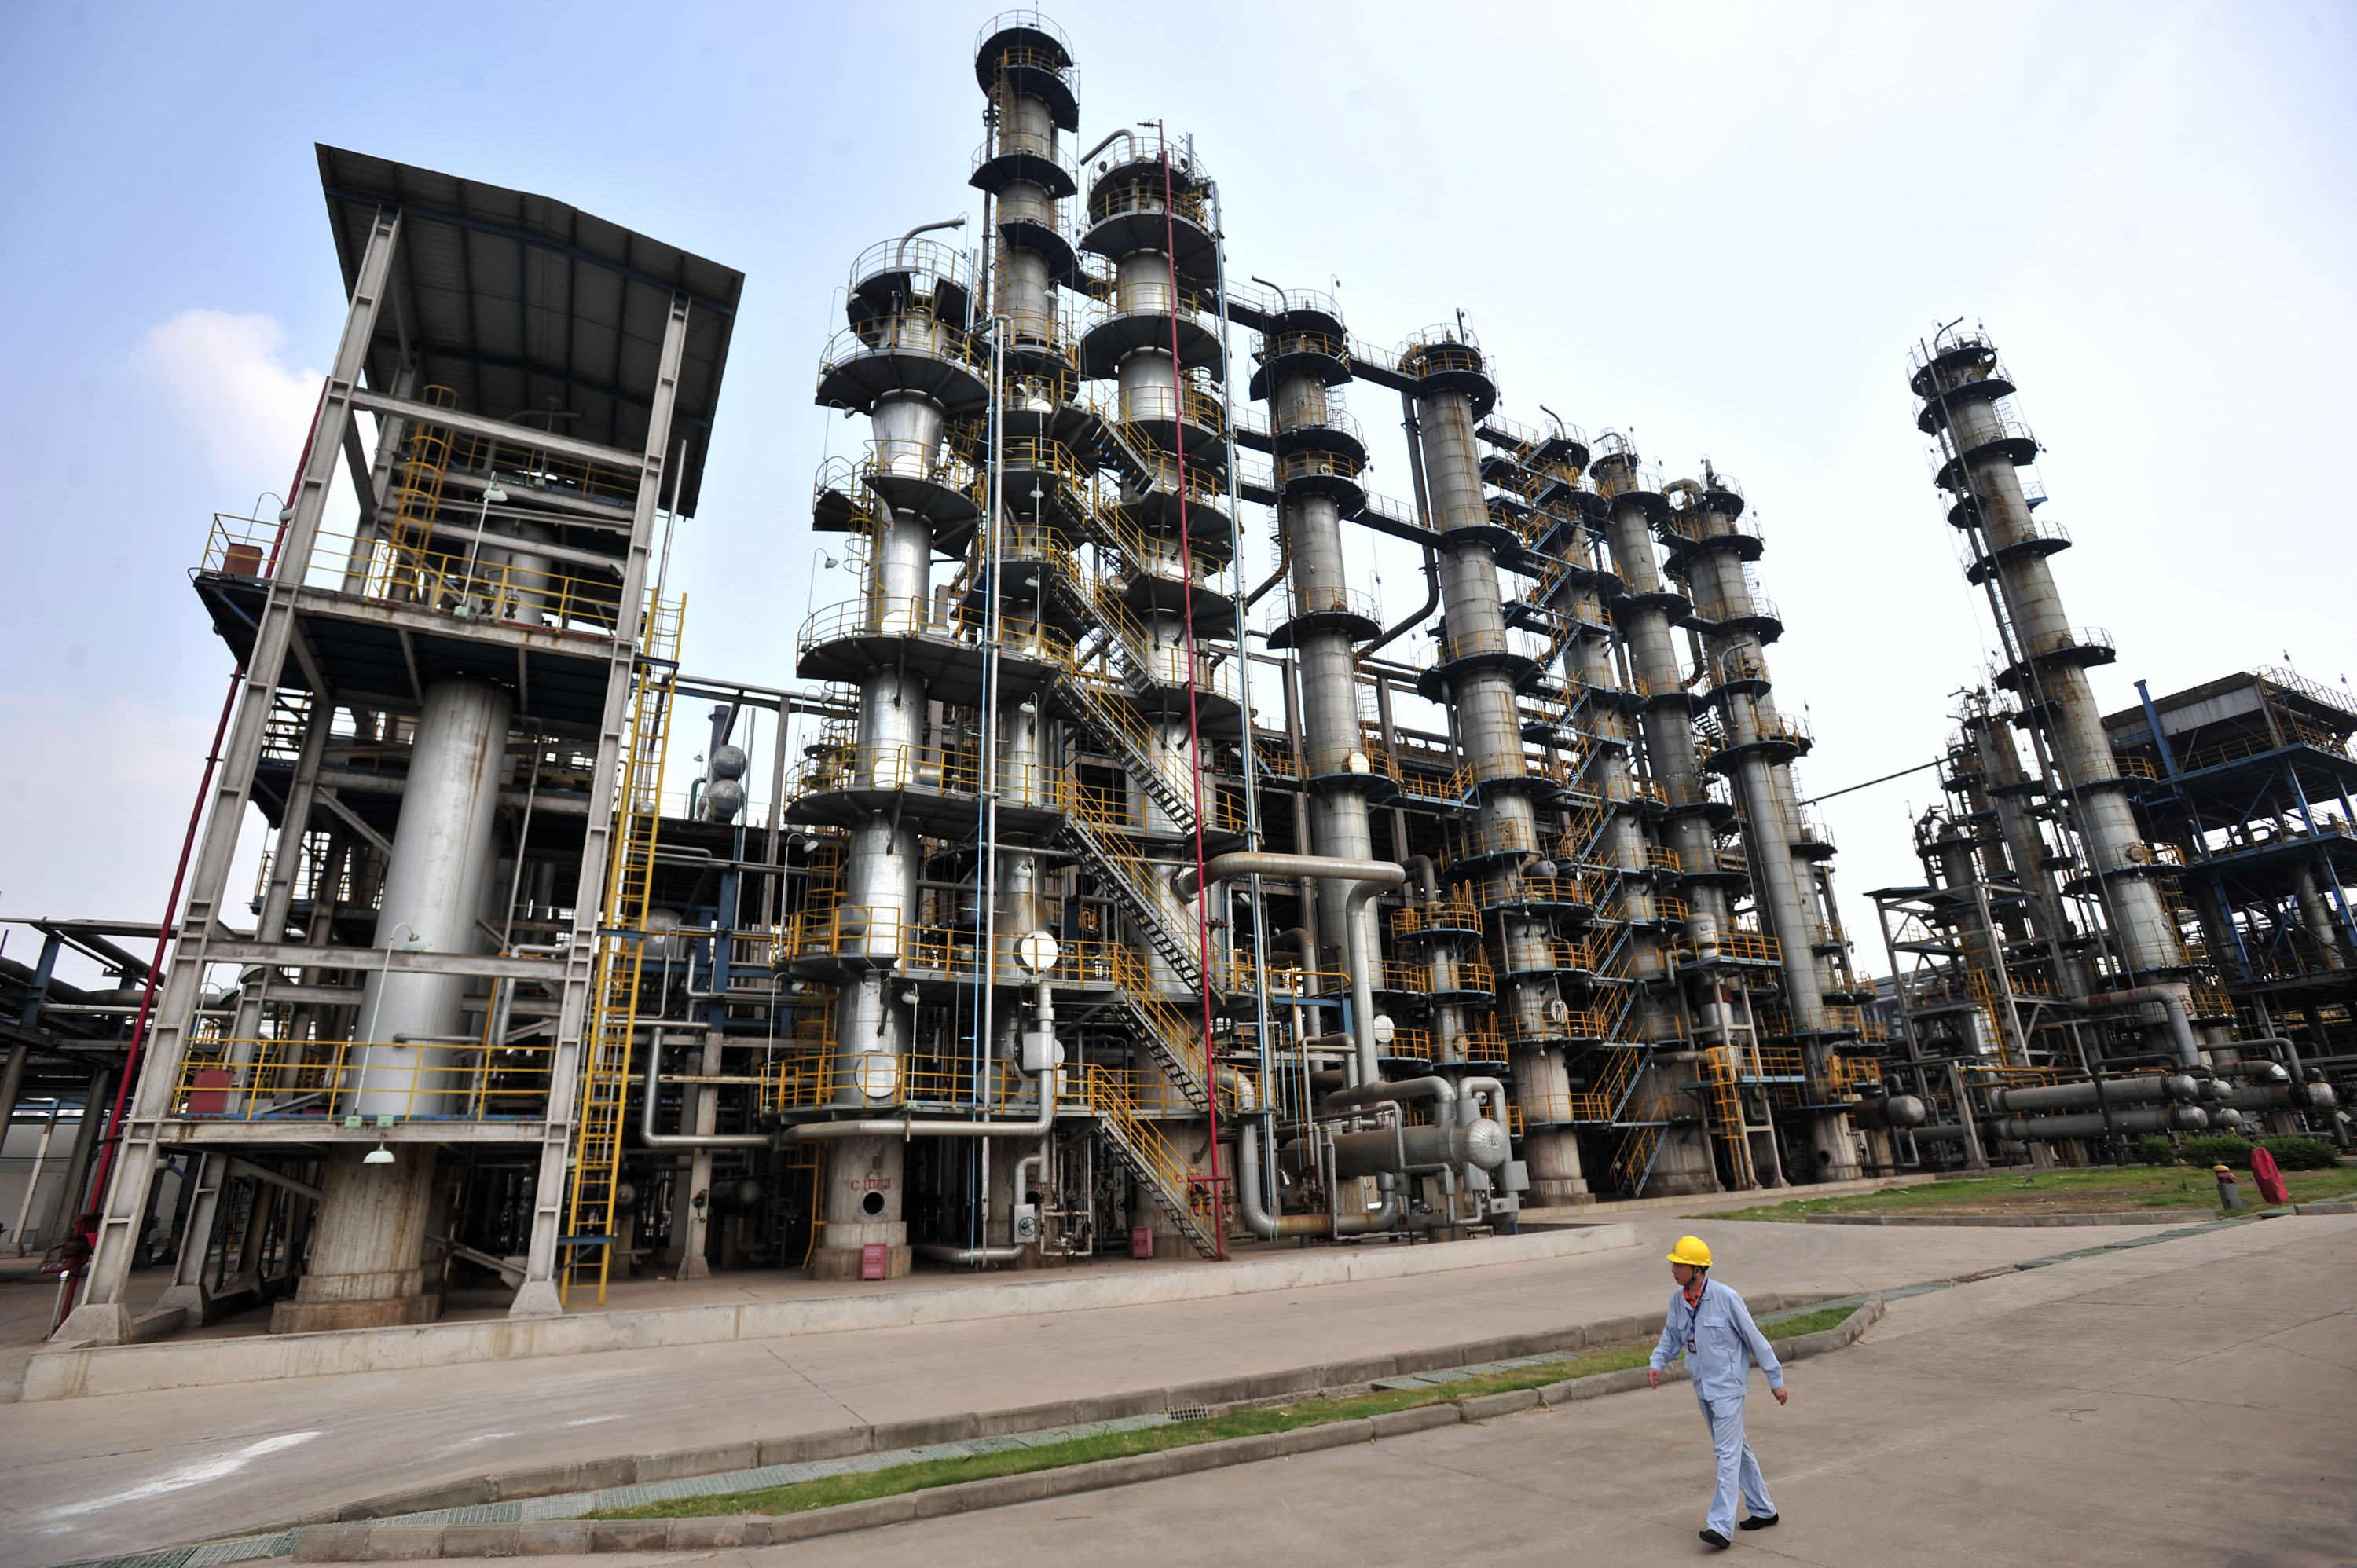 This photo taken on May 10, 2011 shows a worker walking by at an oil refinery of China's Sinopec, in Wuhan, central China's Hubei province.